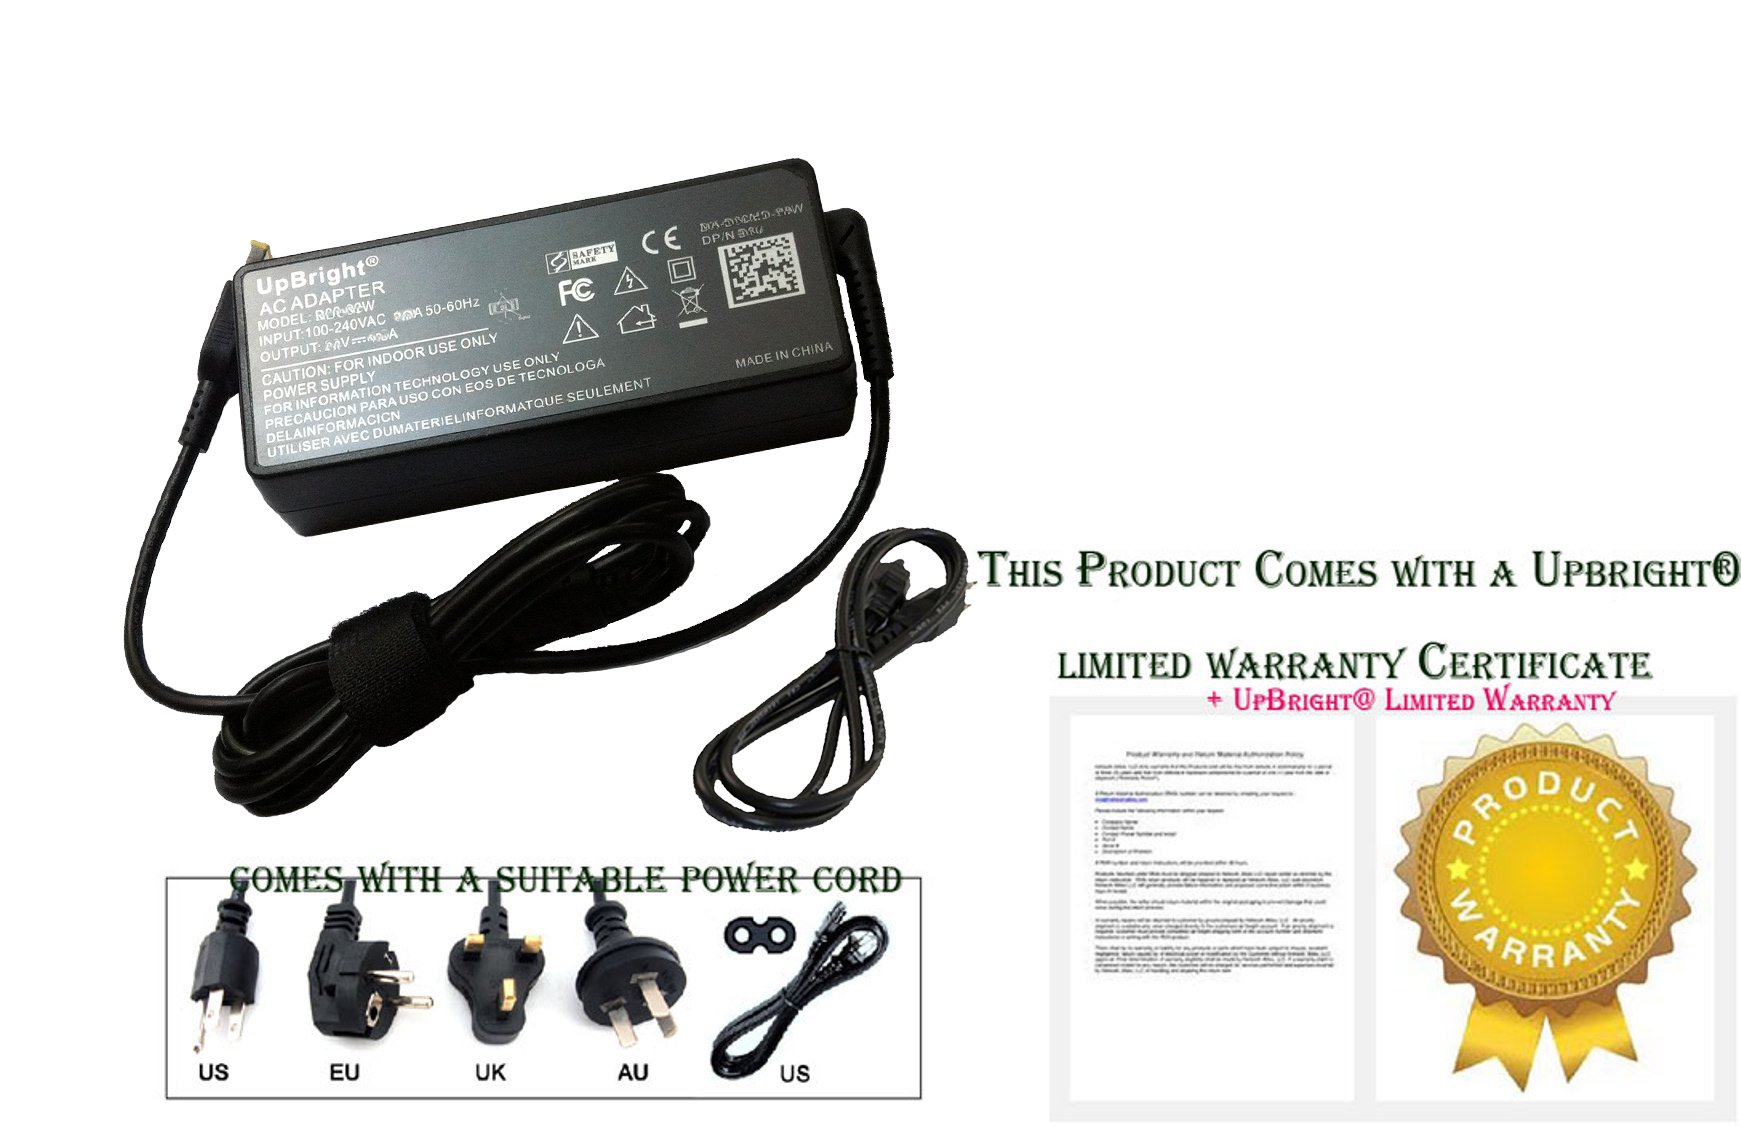 UpBright NEW Global AC / DC Adapter For Lenovo IdeaCentre 300s-11IBR 300s-111BR 90DQ0033US Desktop Computer Power Supply Cord Cable PS Battery Charger Mains PSU